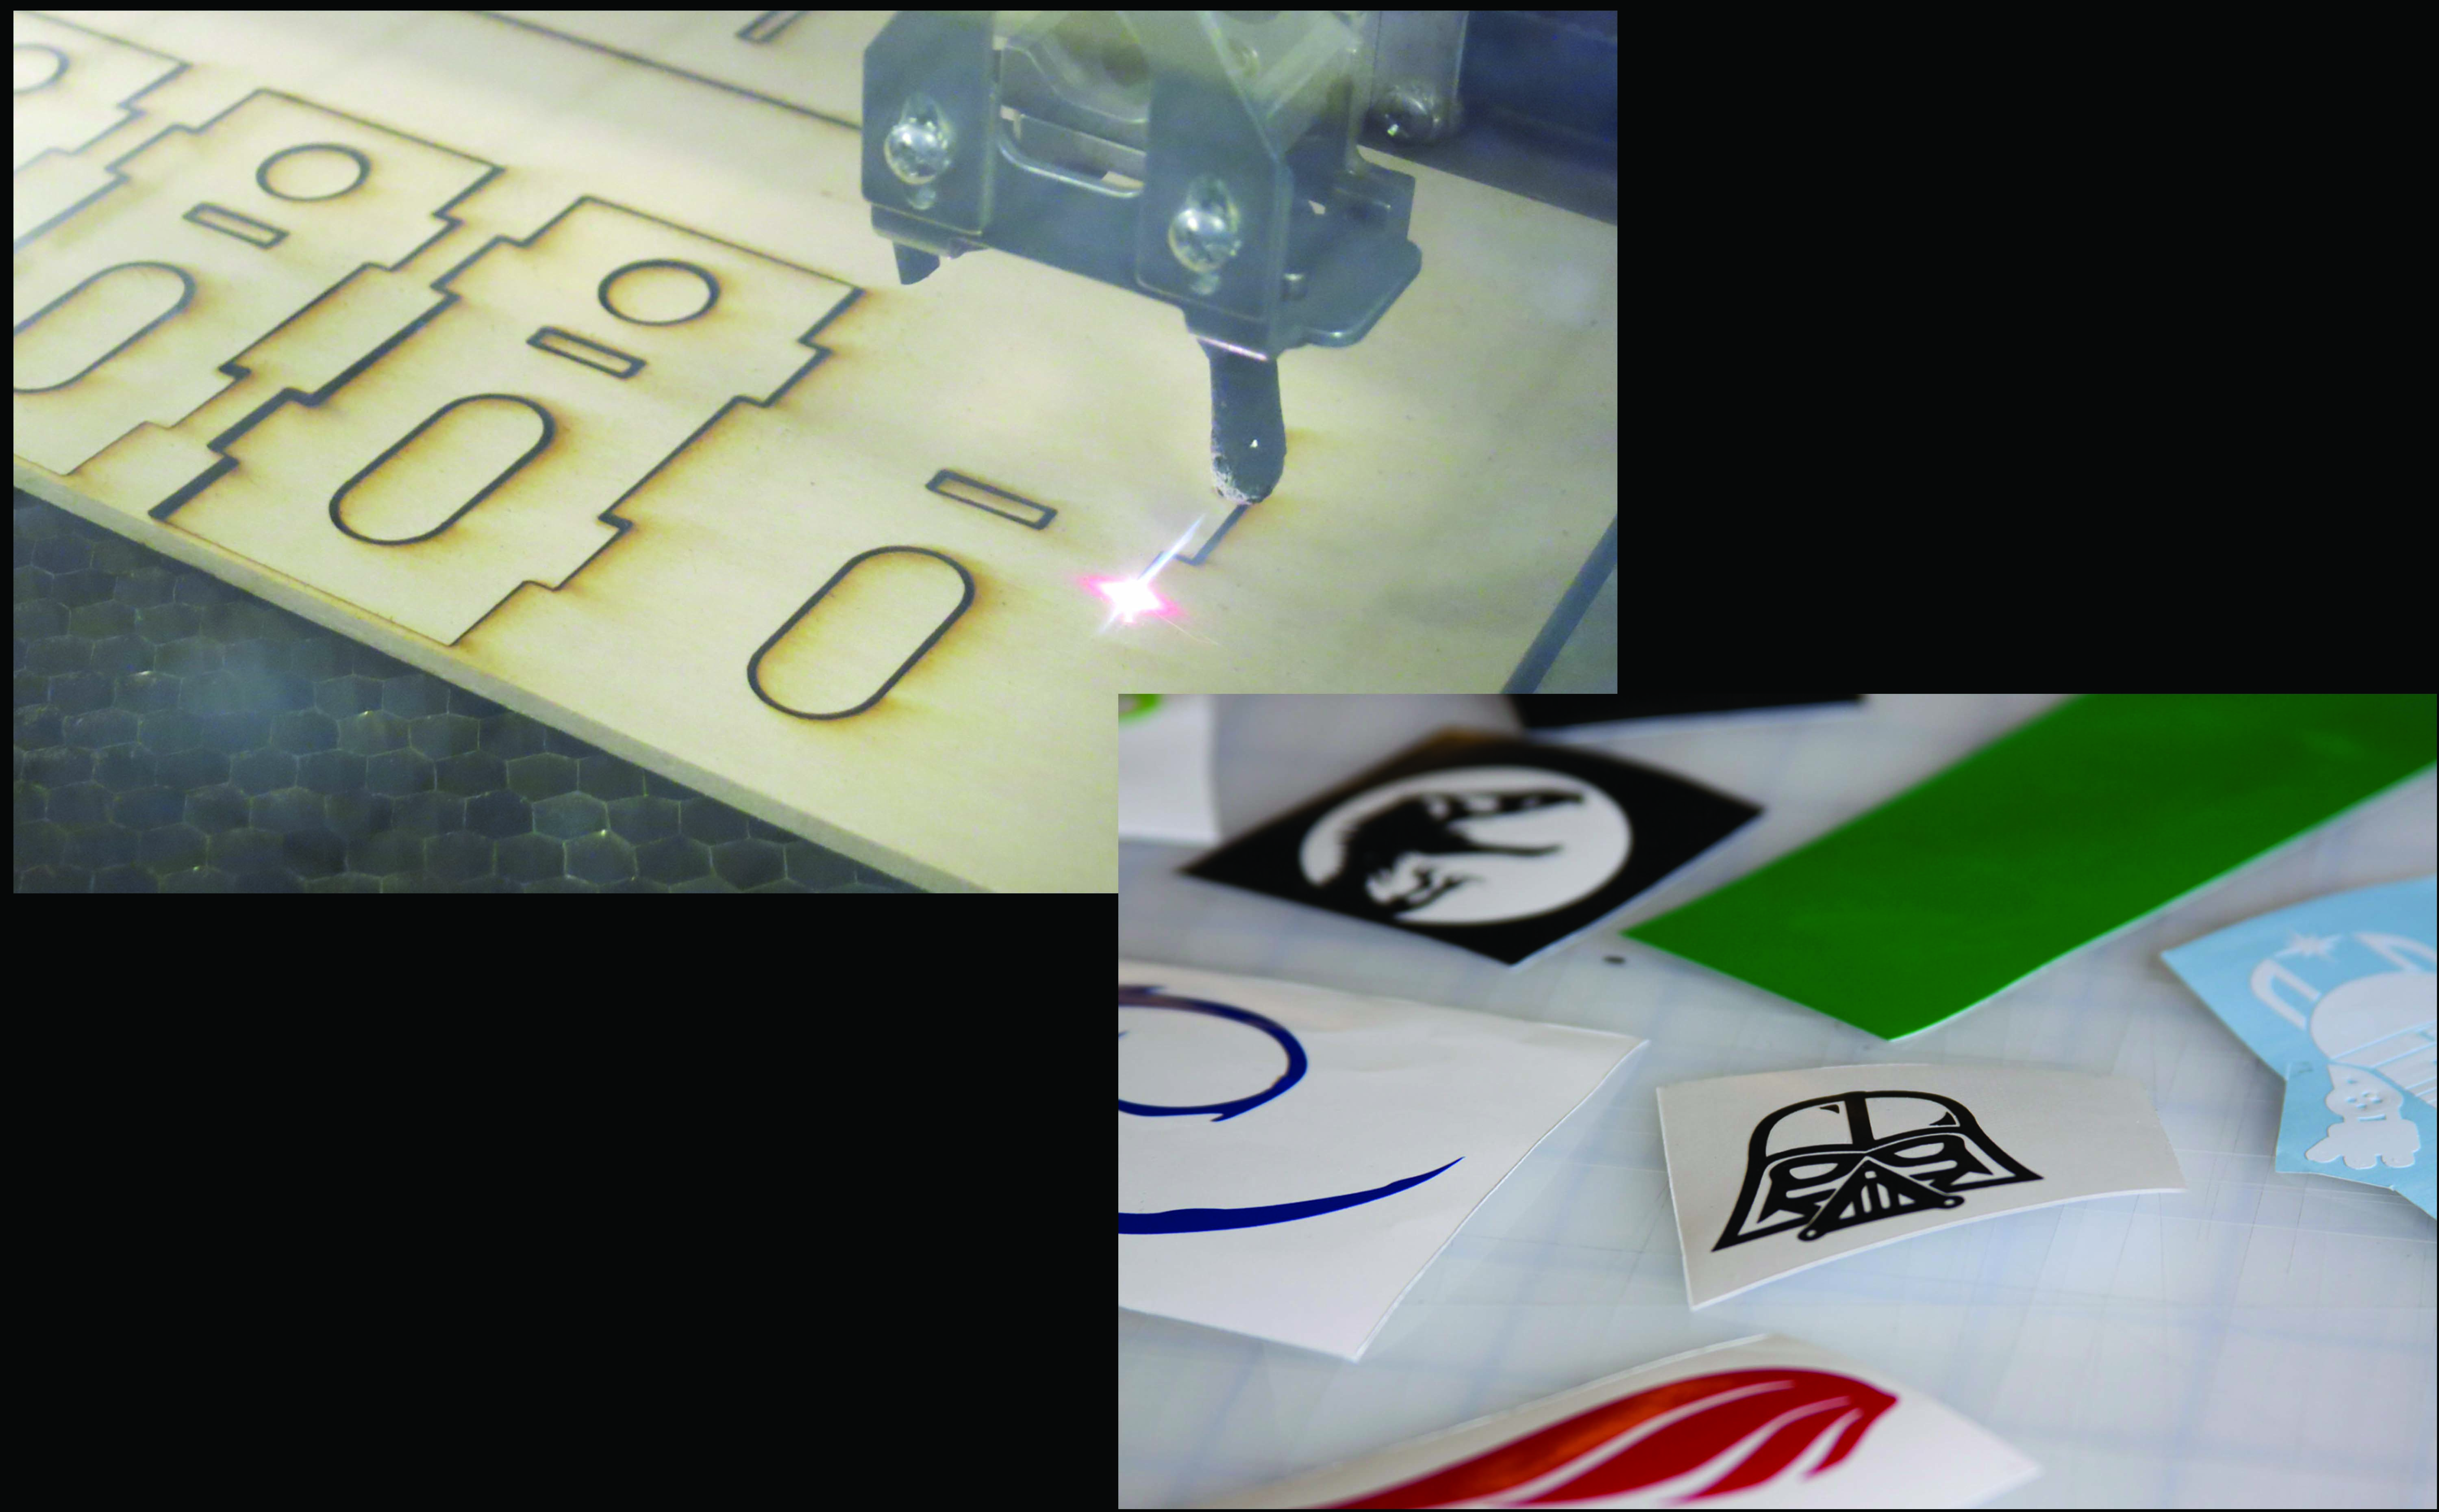 Laser cutter cutting wood and examples of vinyl stickers.